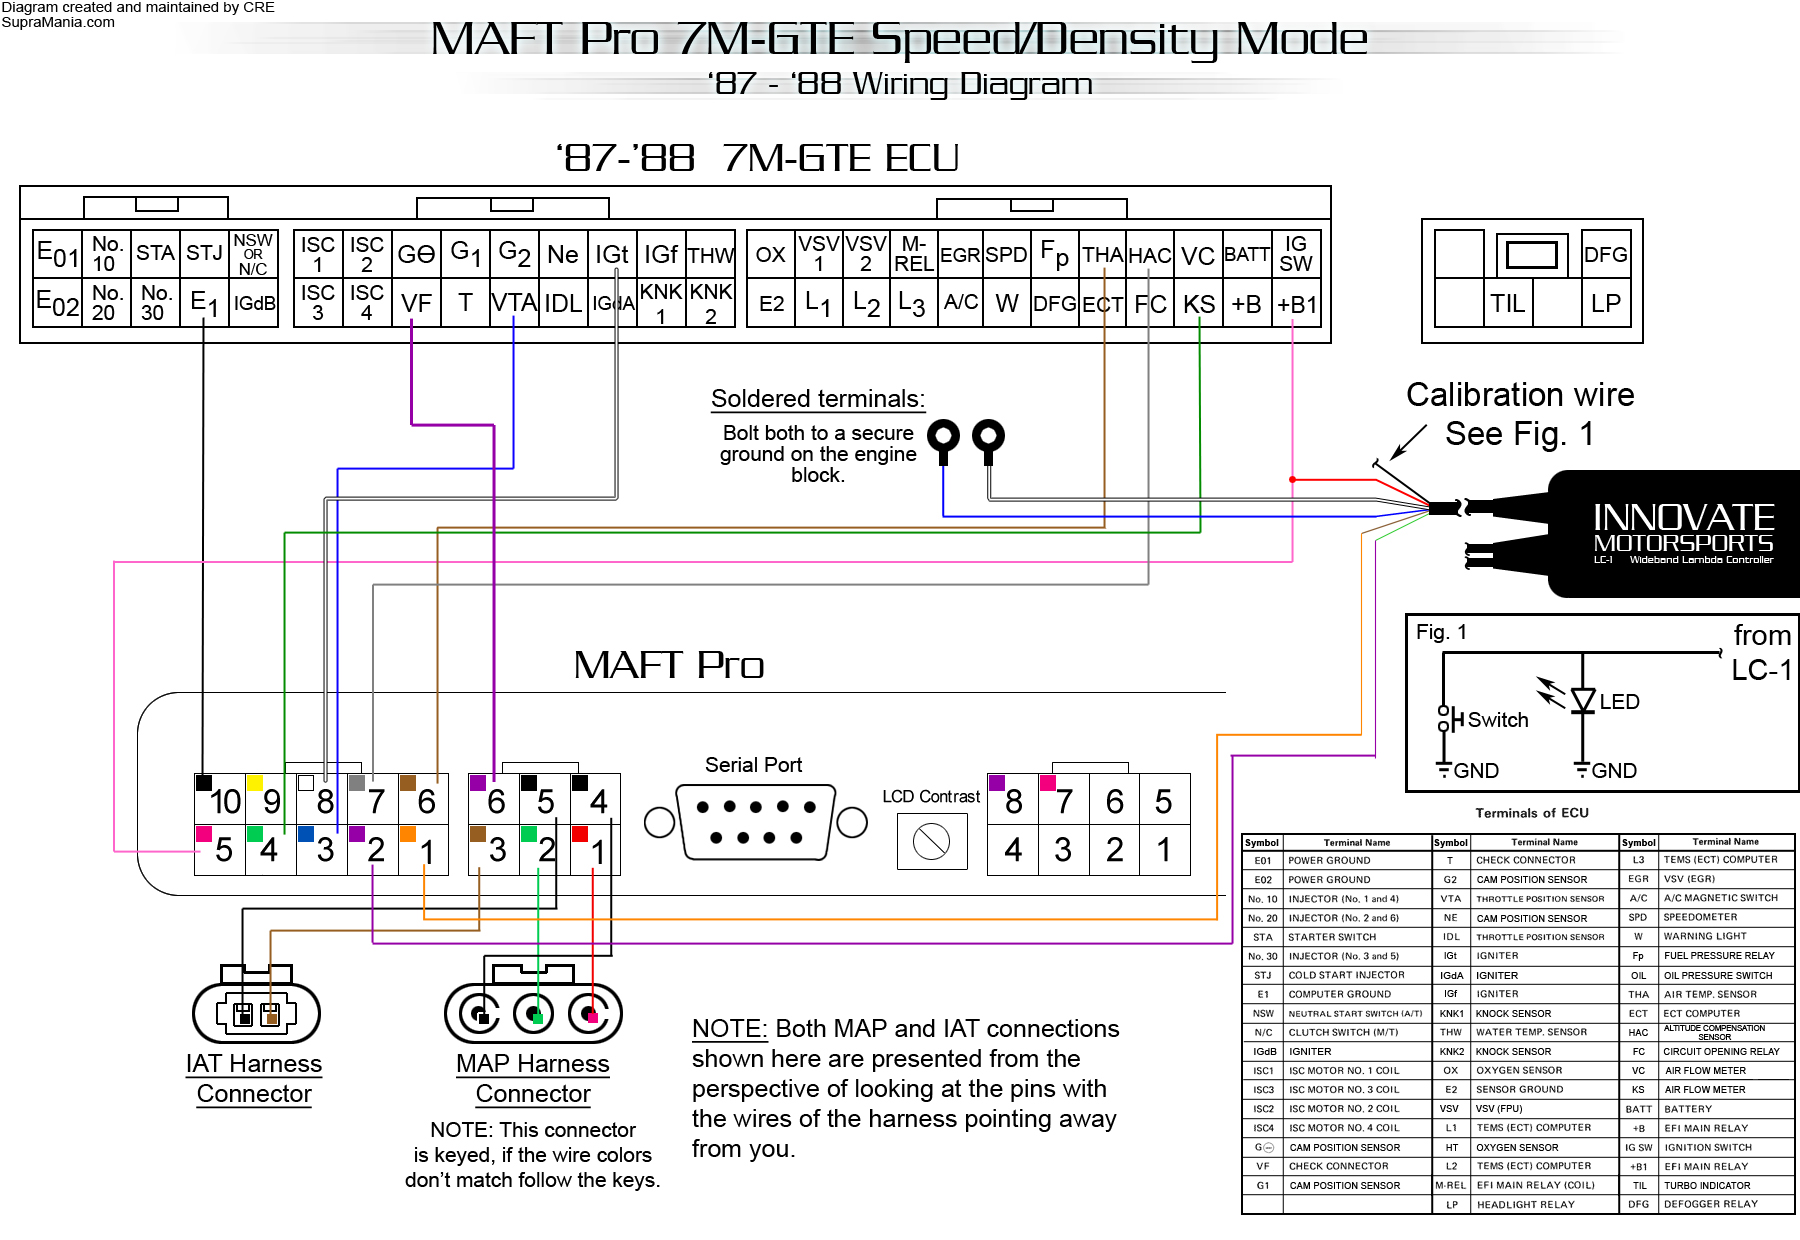 MAFT Pro 7M GTE SD 87 88 maft pro 7m gte sd 87 88 jpg 7mgte wiring diagram at bayanpartner.co